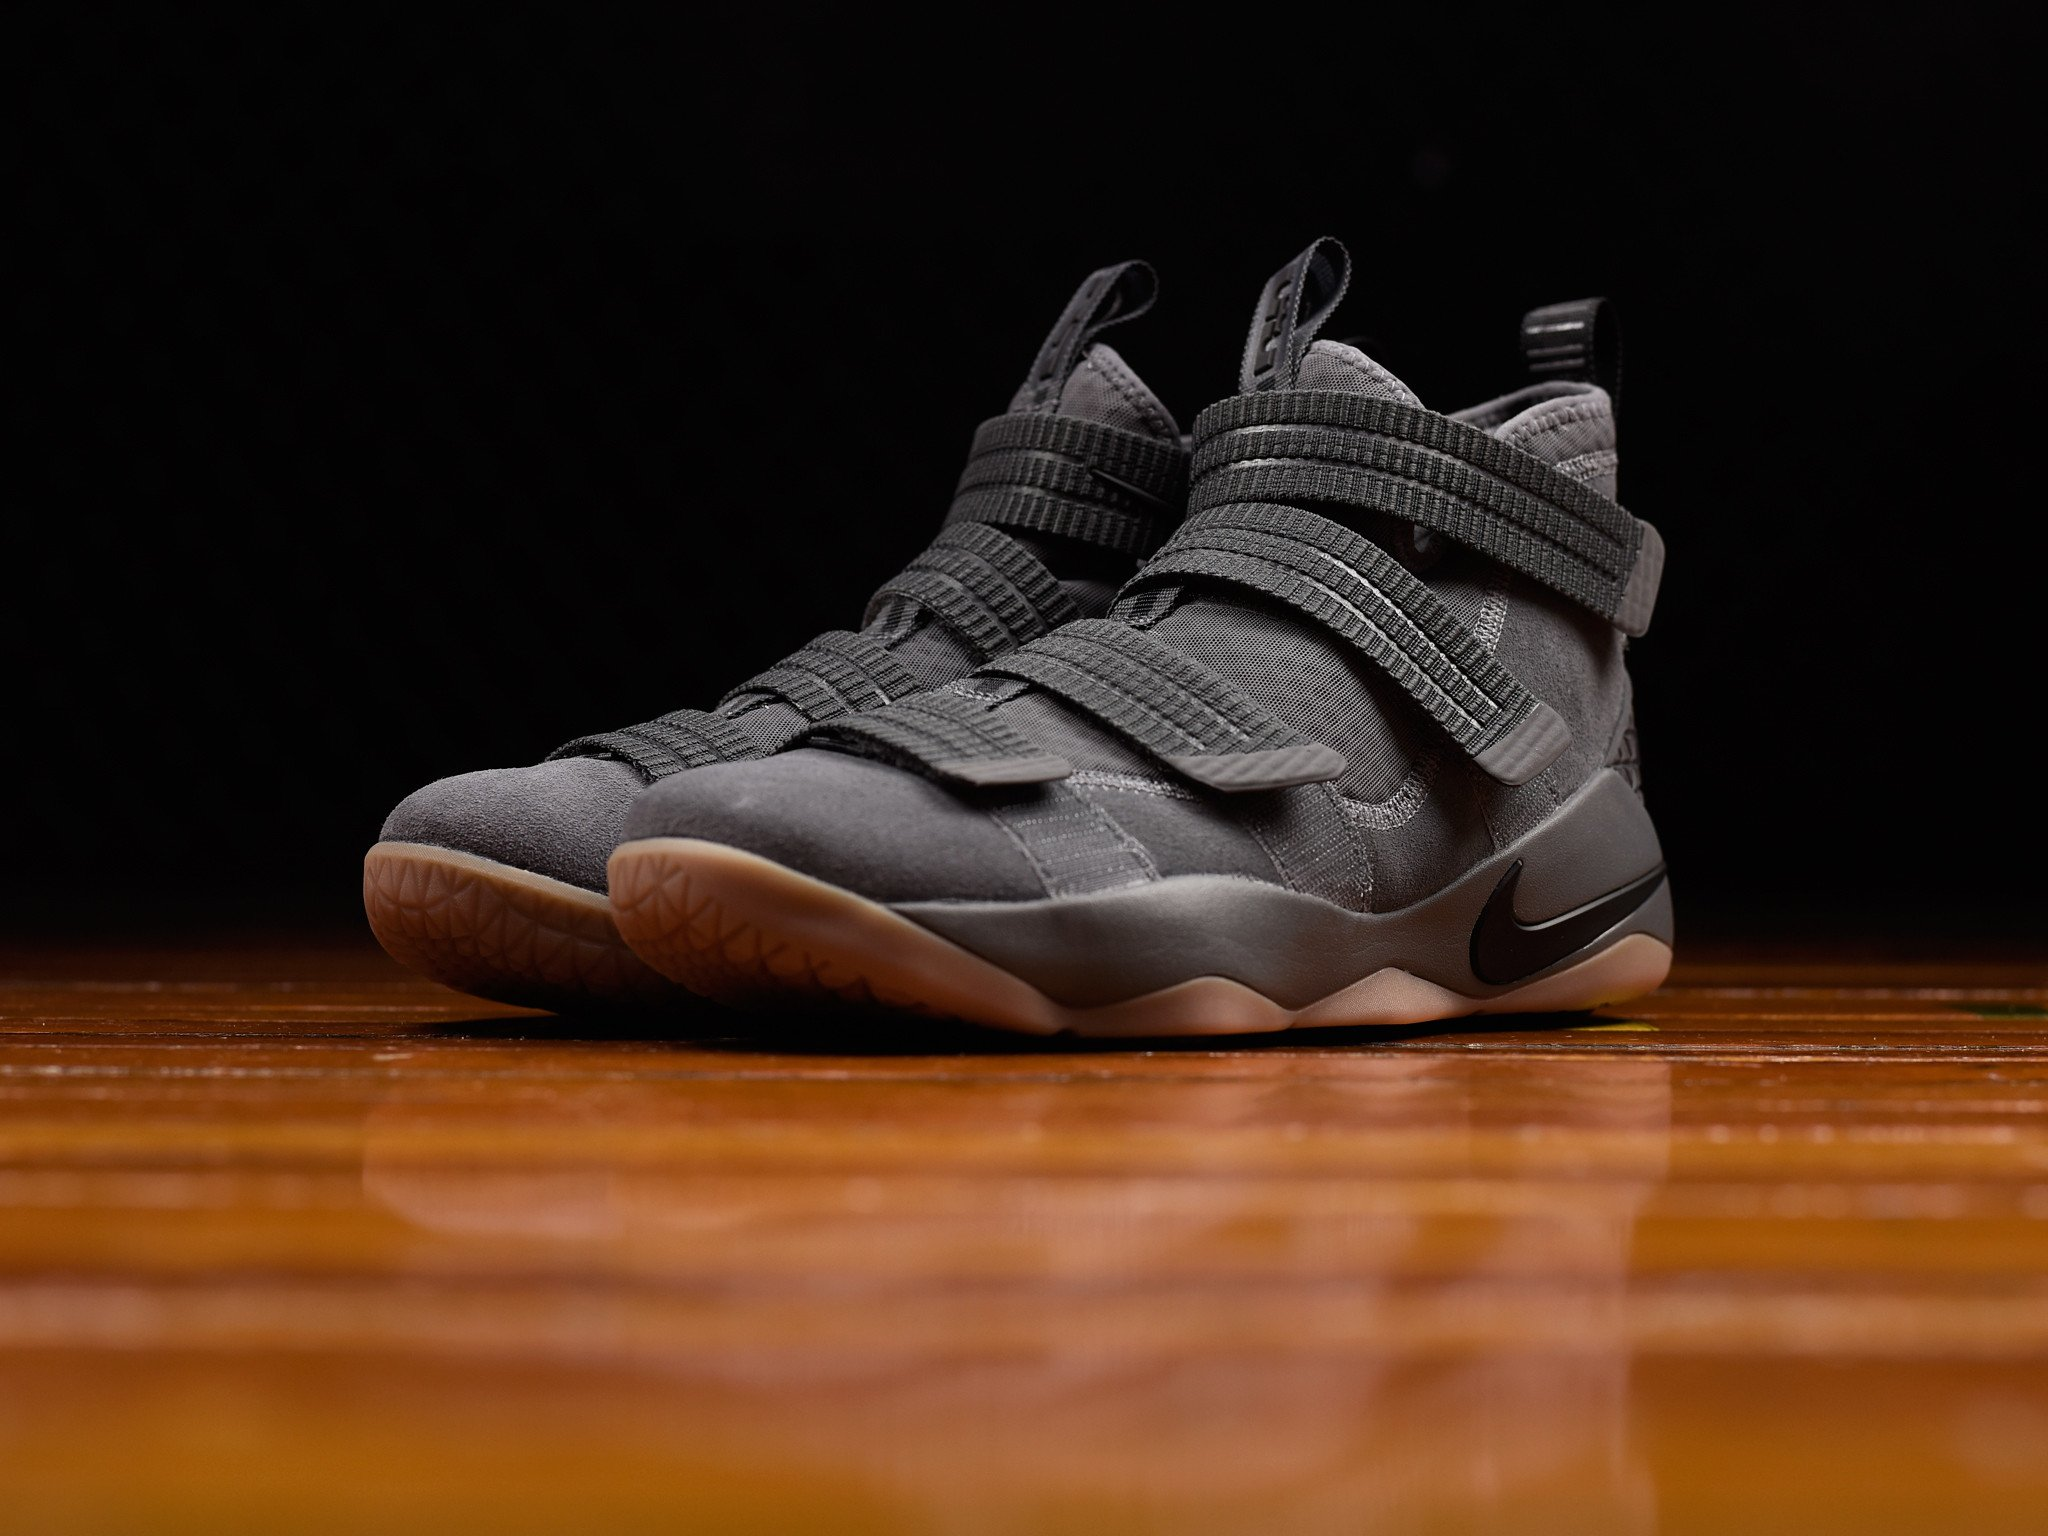 buy popular 1c523 ac47f The Nike LeBron Soldier 11 has Dropped in 'Grey Gum ...